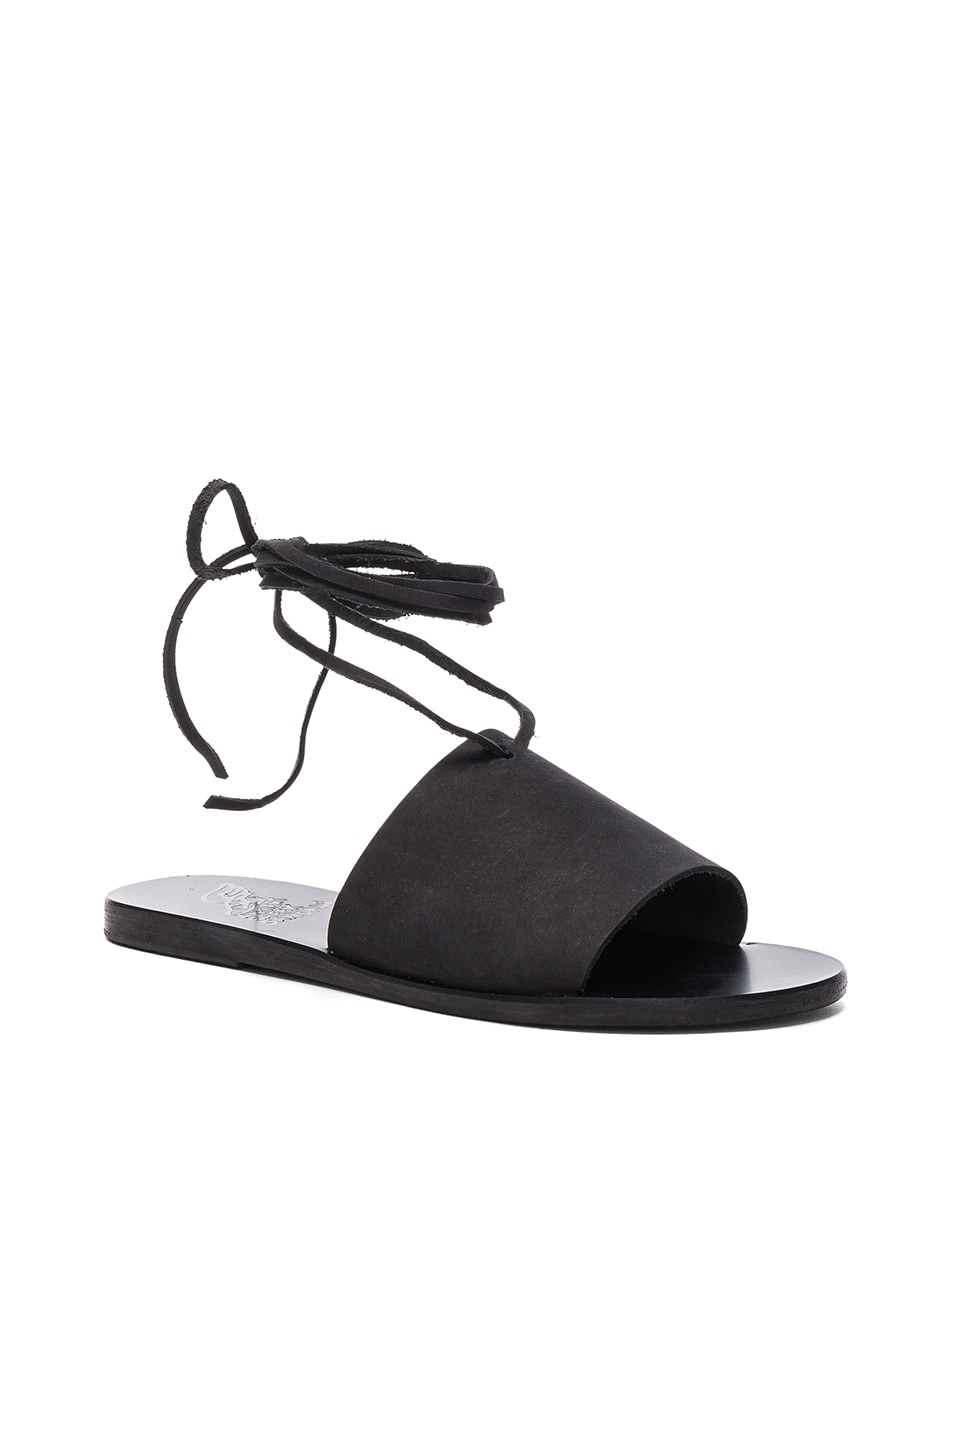 Image 2 of Ancient Greek Sandals Leather Christina Sandals in Black